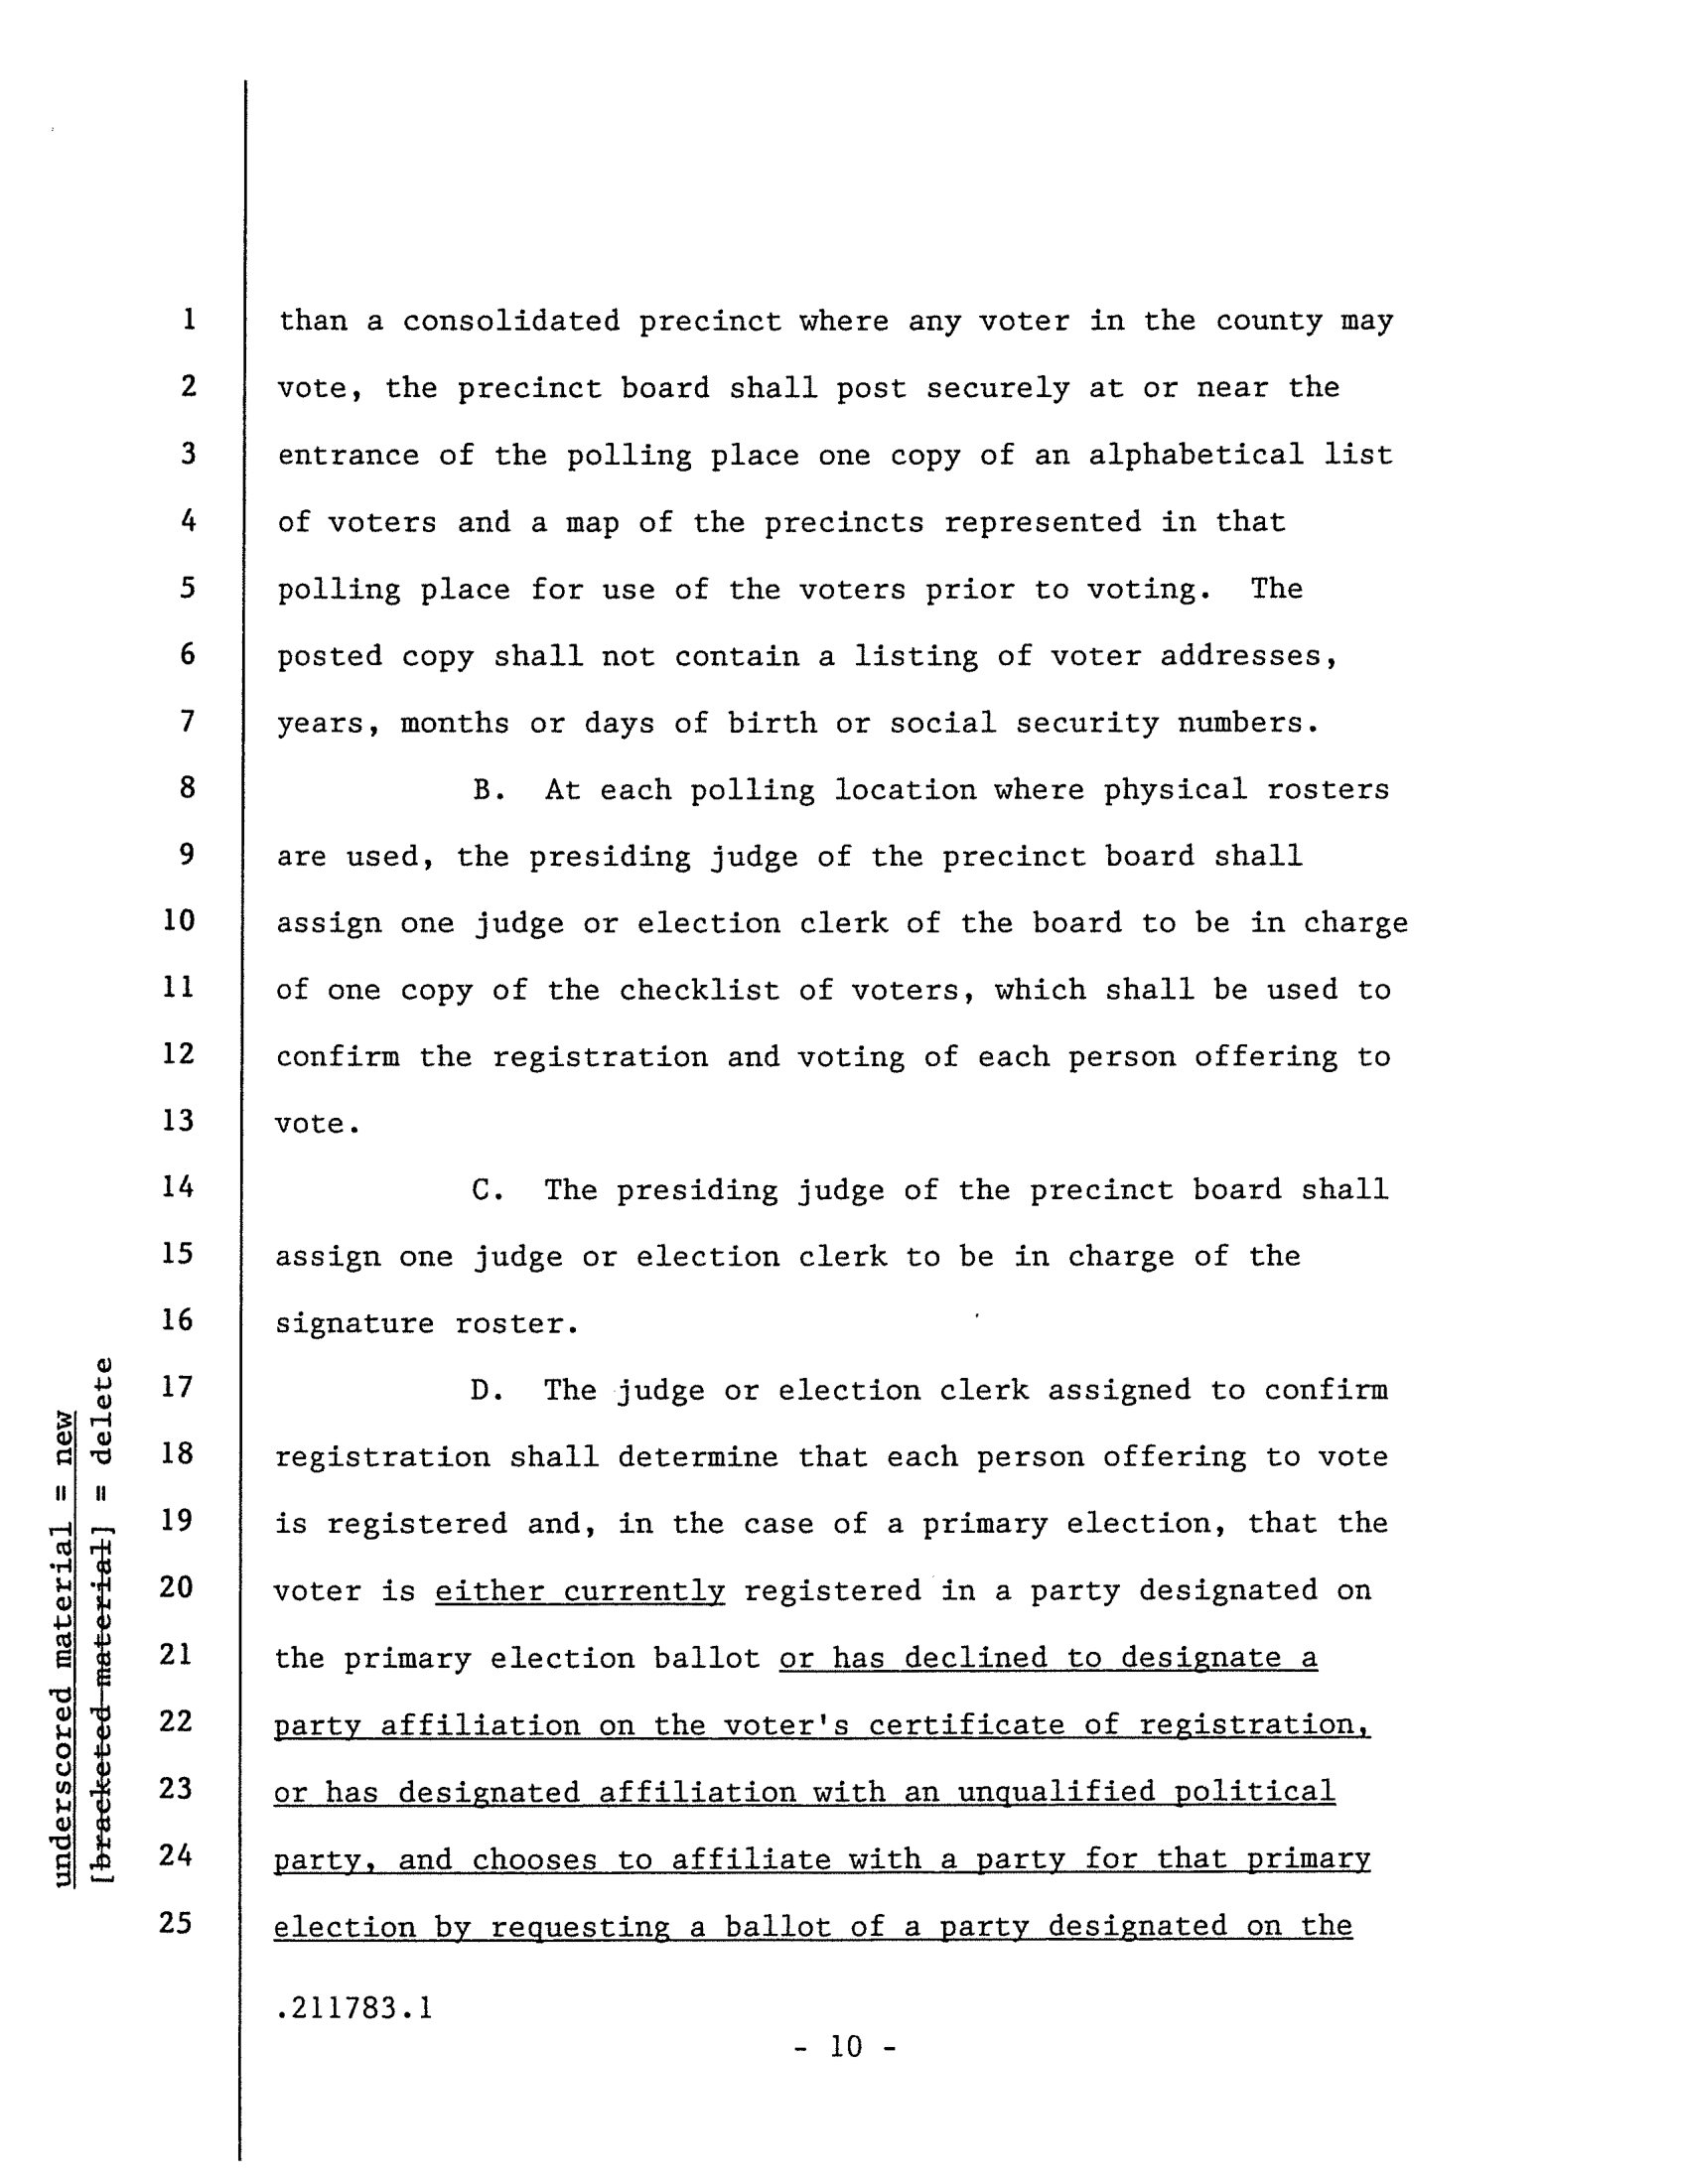 NMOP_OP_2019_bill_at_intro_HB93-10.png